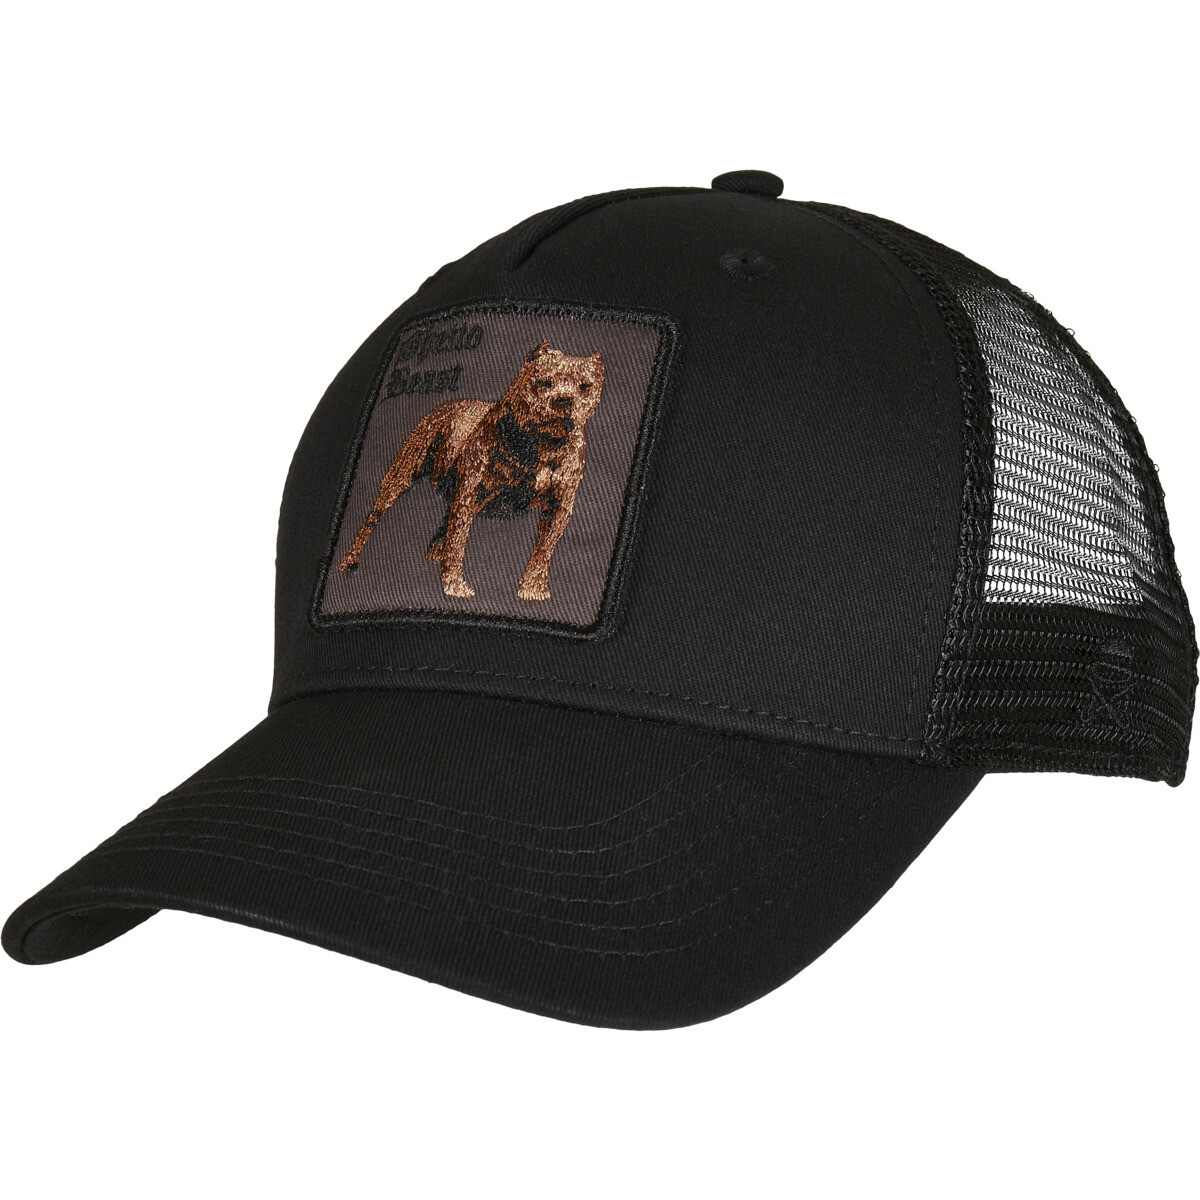 C&S WL Ghetto Beast Curved Trucker Cap